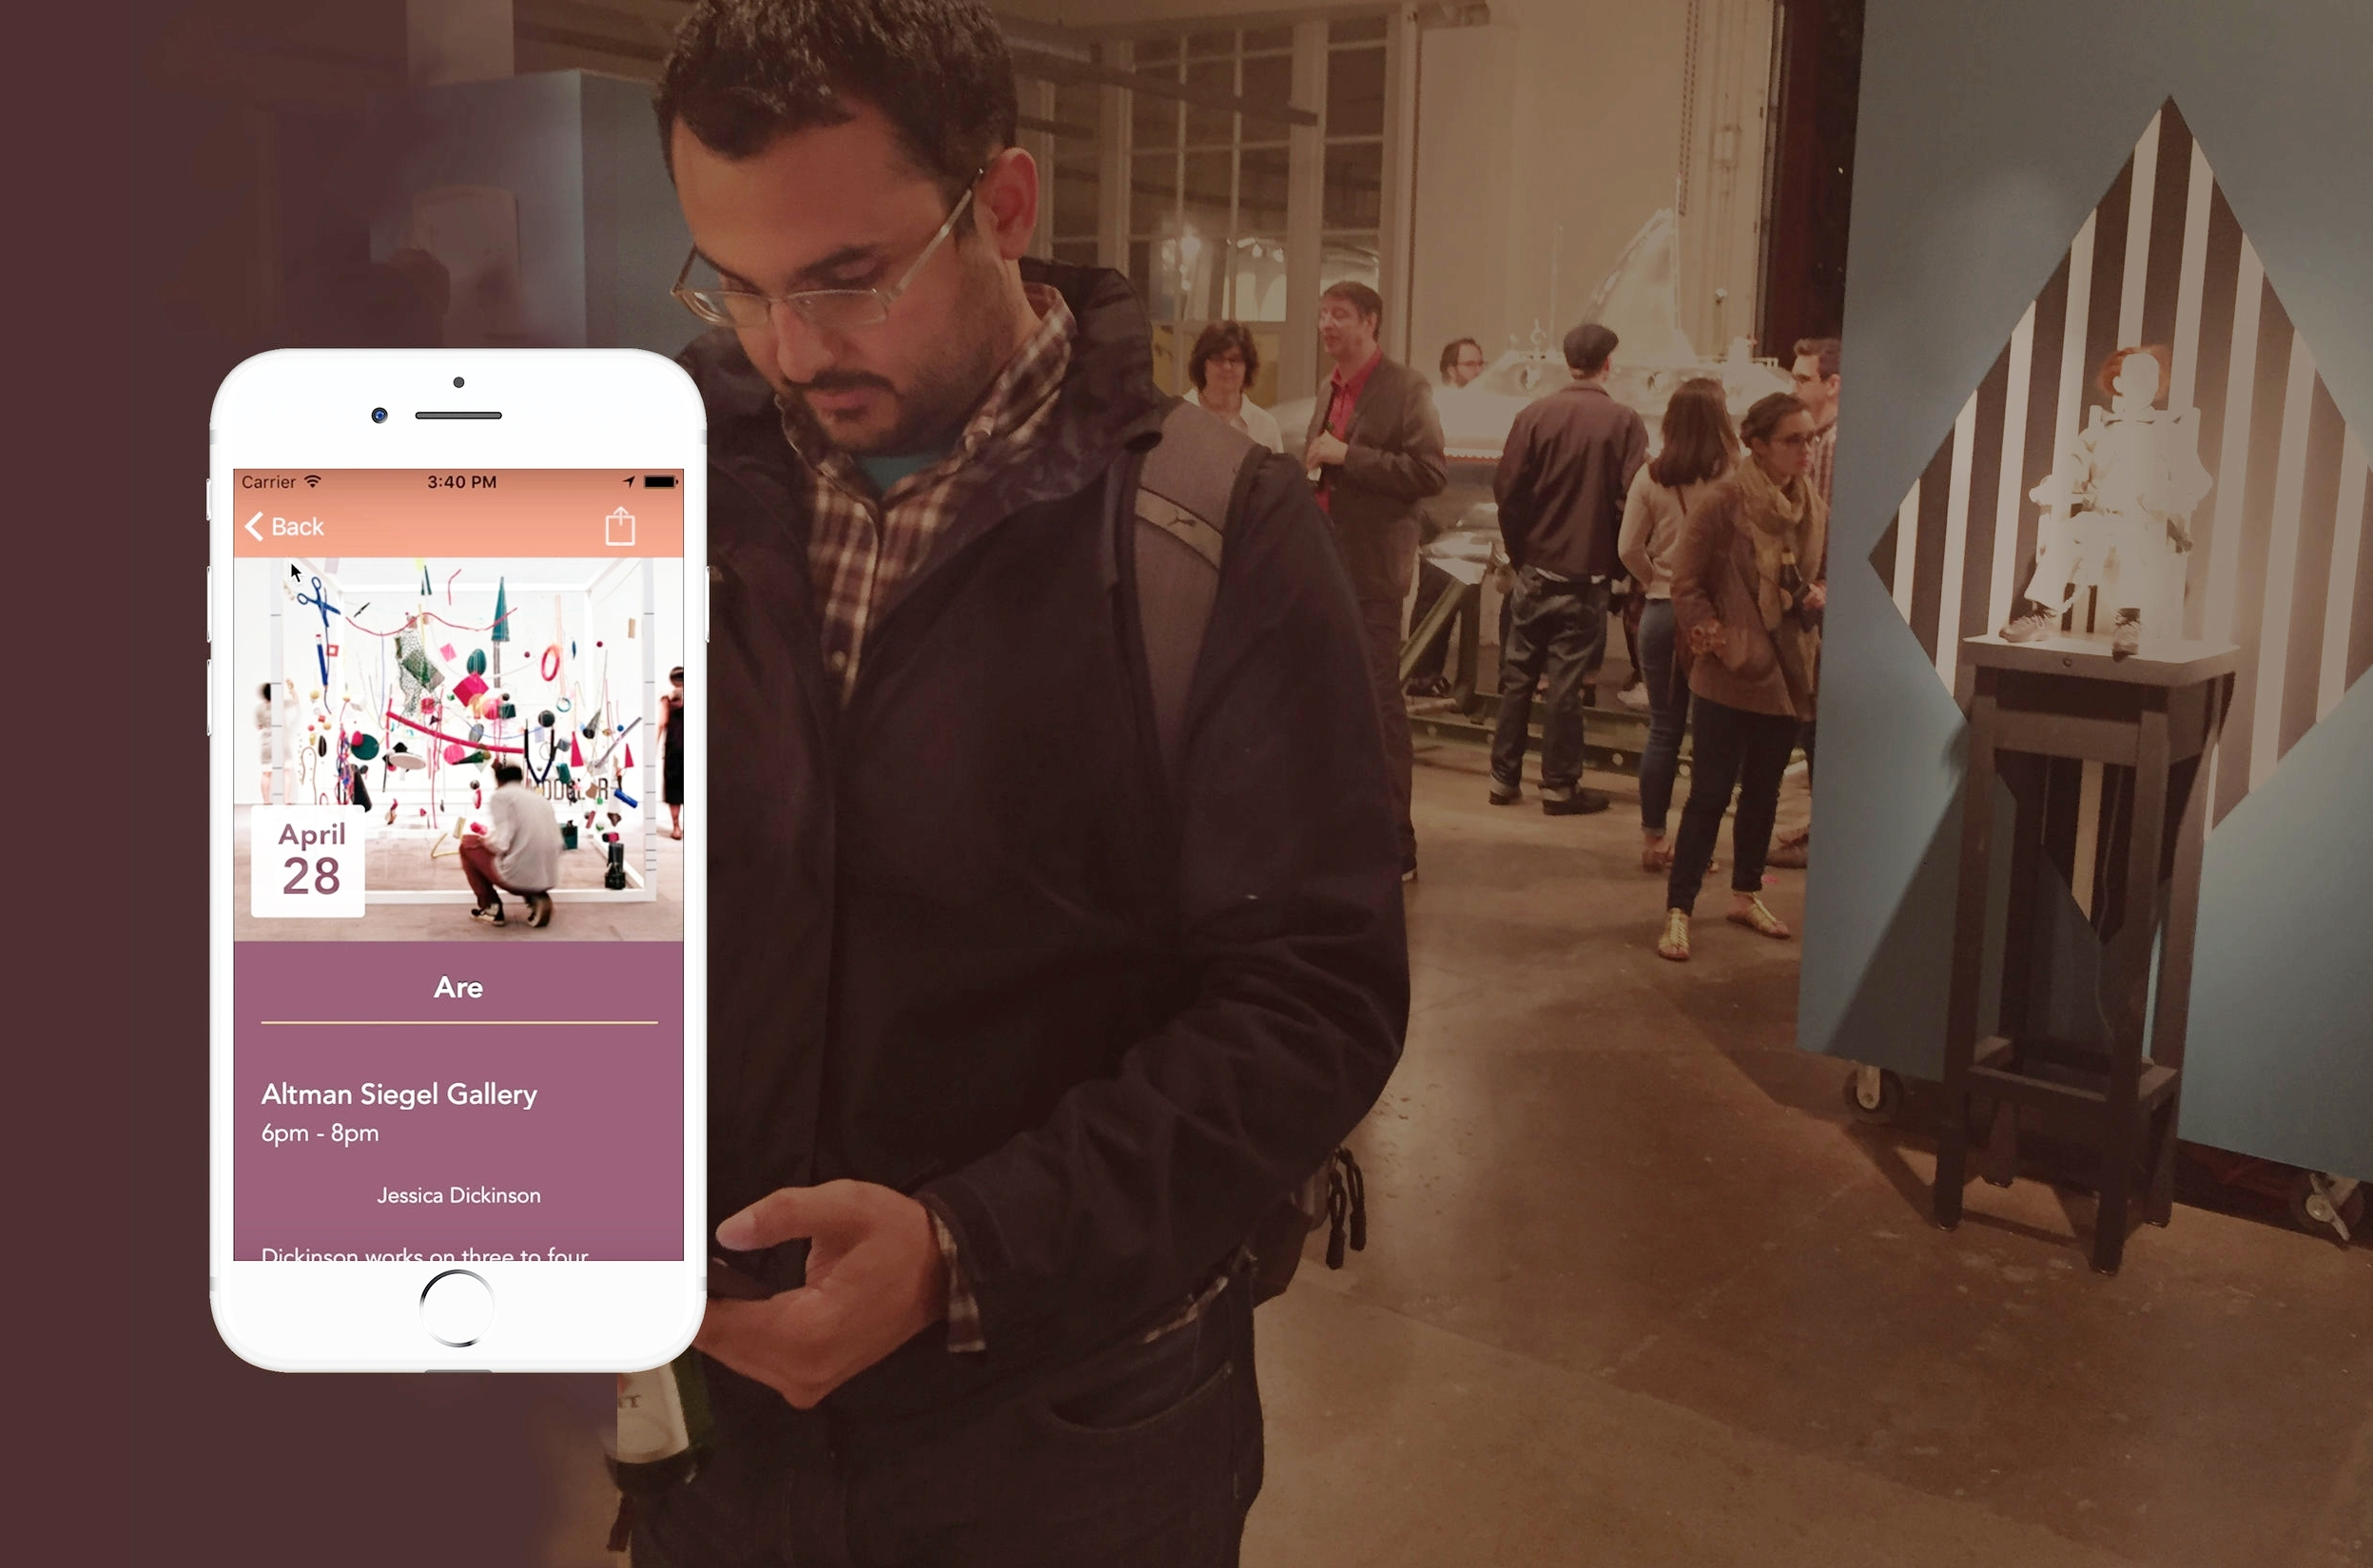 SF Art Opening   Social Design / iOS Prototyping   Learn More →